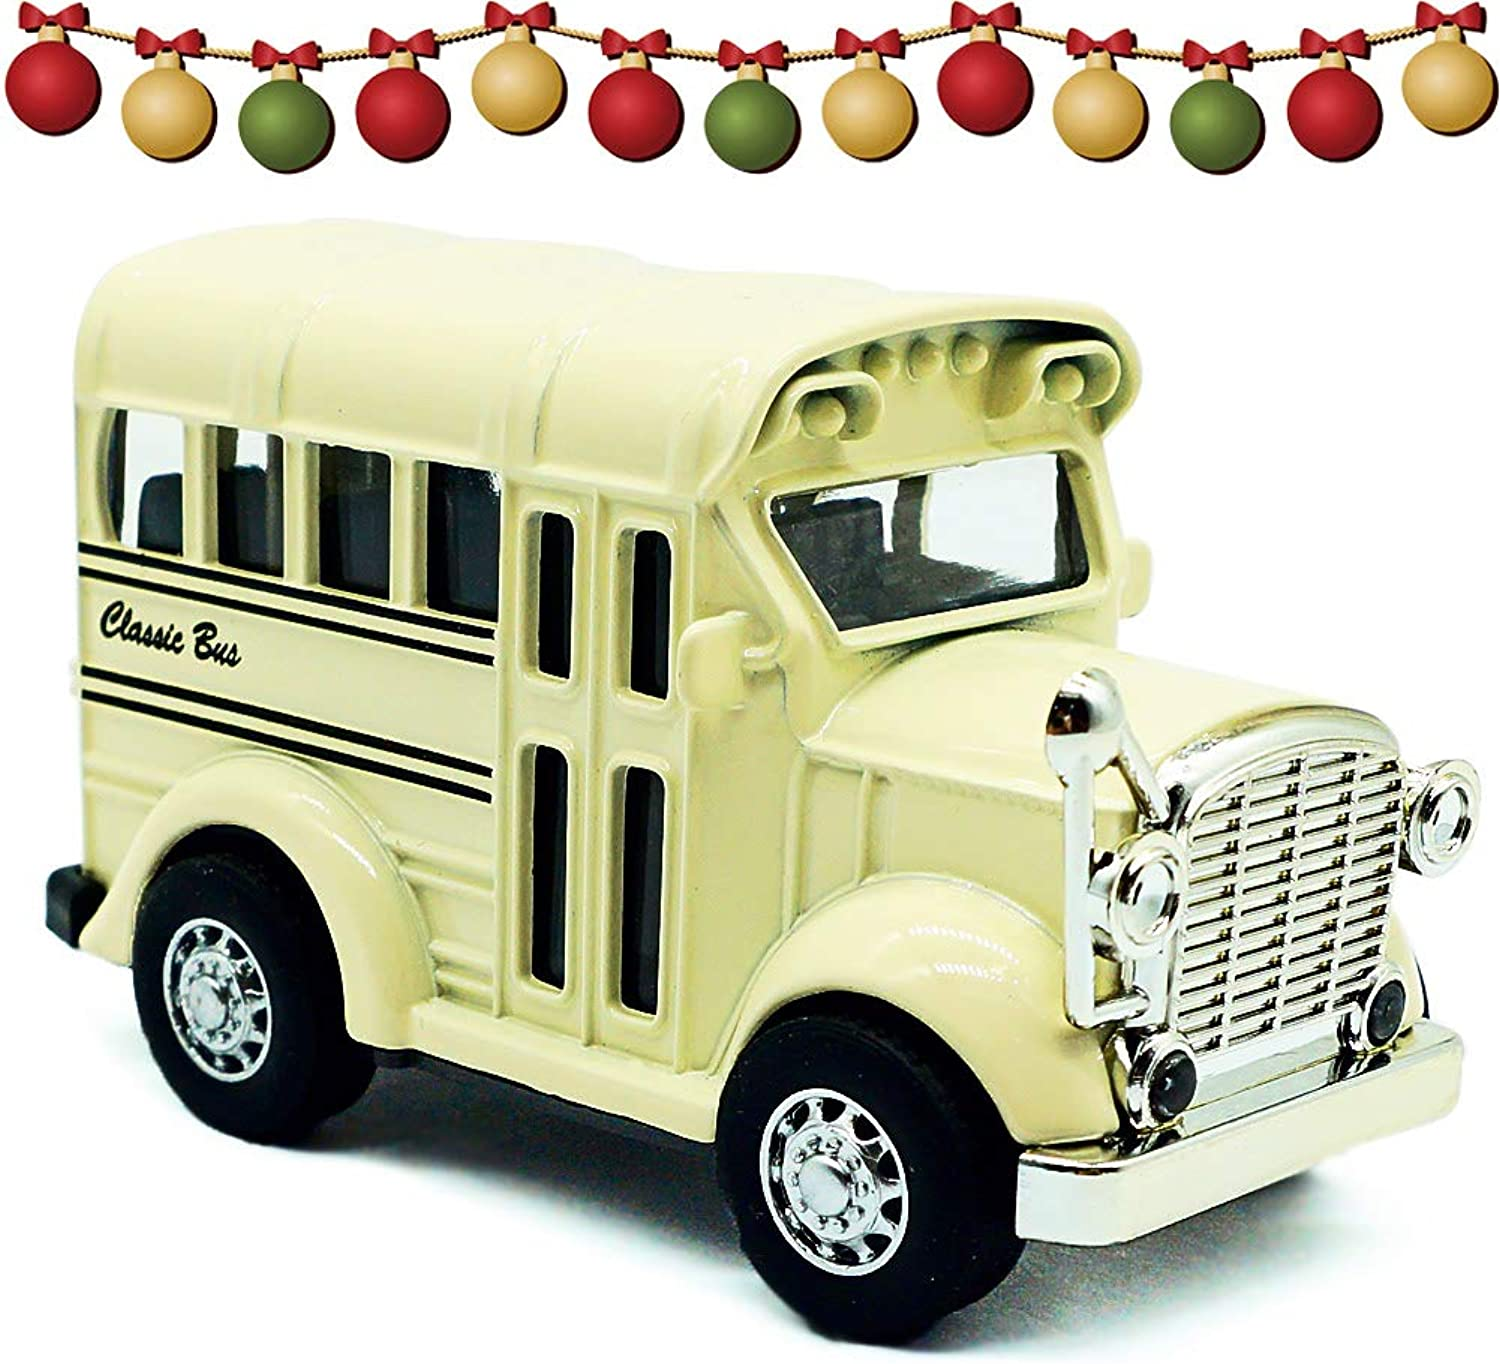 THREE BEARS 3.15'' Pull Back Die Cast,Lights & Sounds School Bus Toy,1 36 Scale Classic Diecast Model Cars(White)...